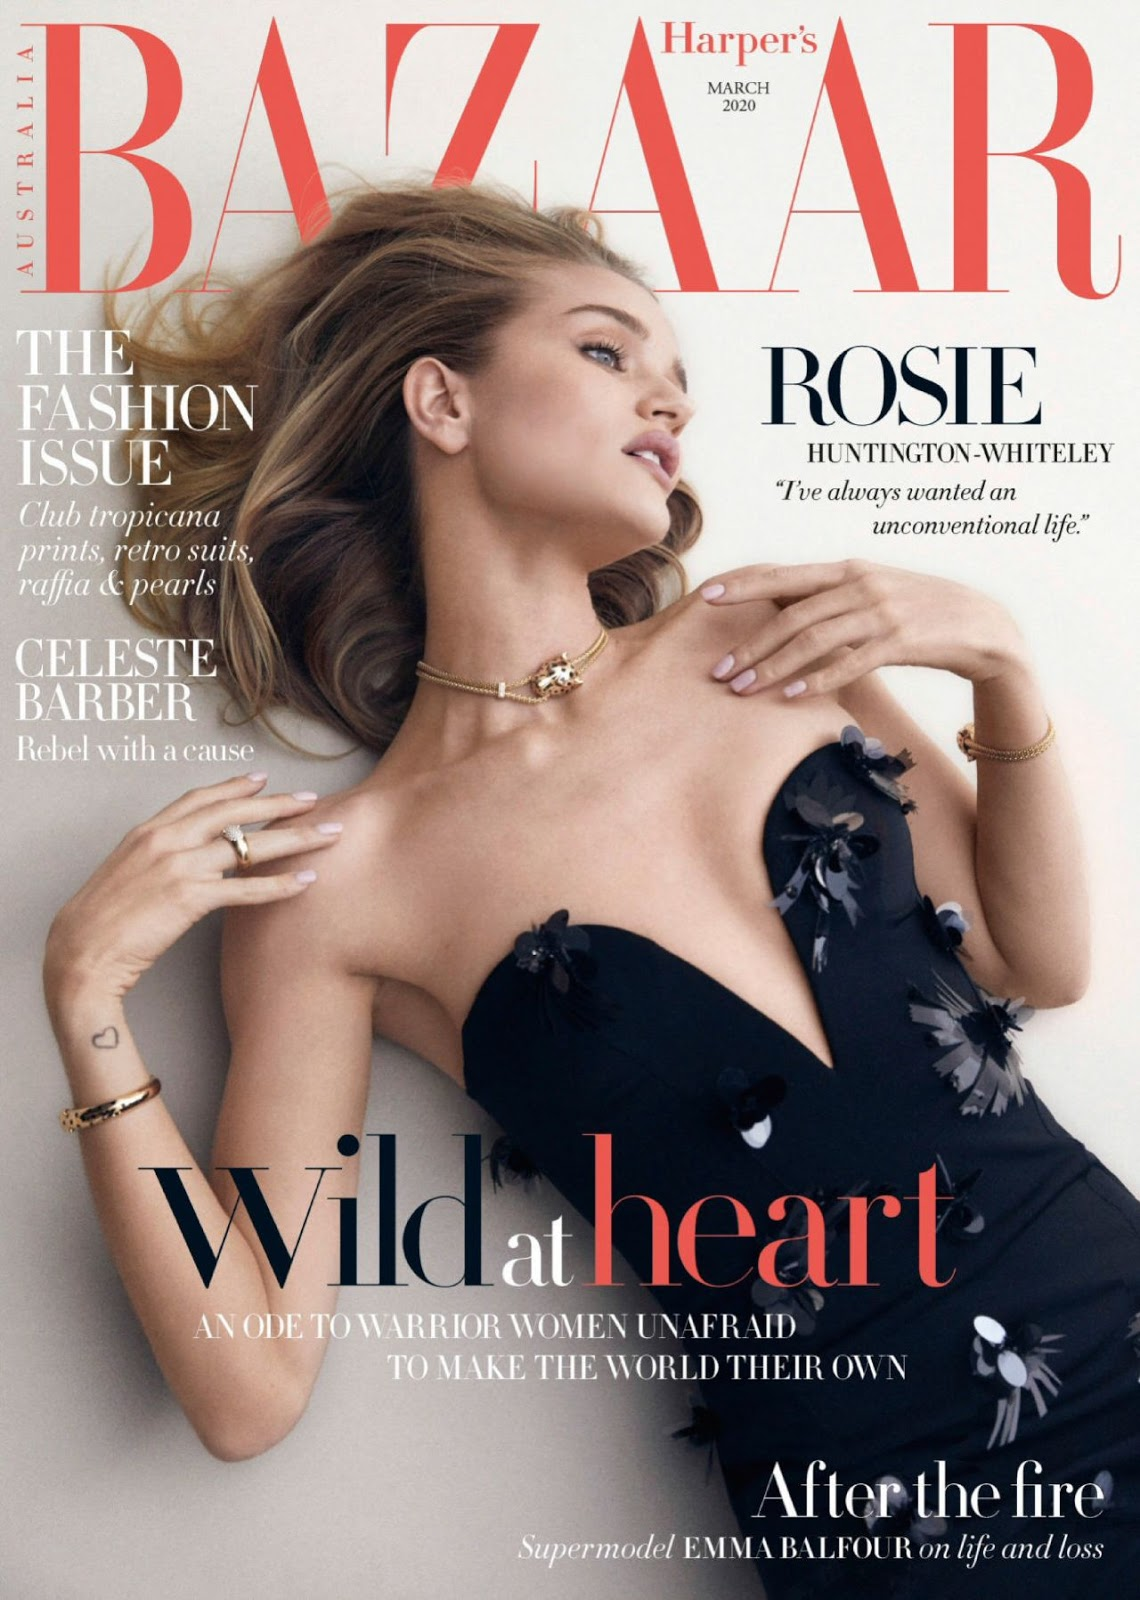 Rosie Huntington-Whiteley covers Harper's Bazaar Australia's The Fashion Issue March 2020